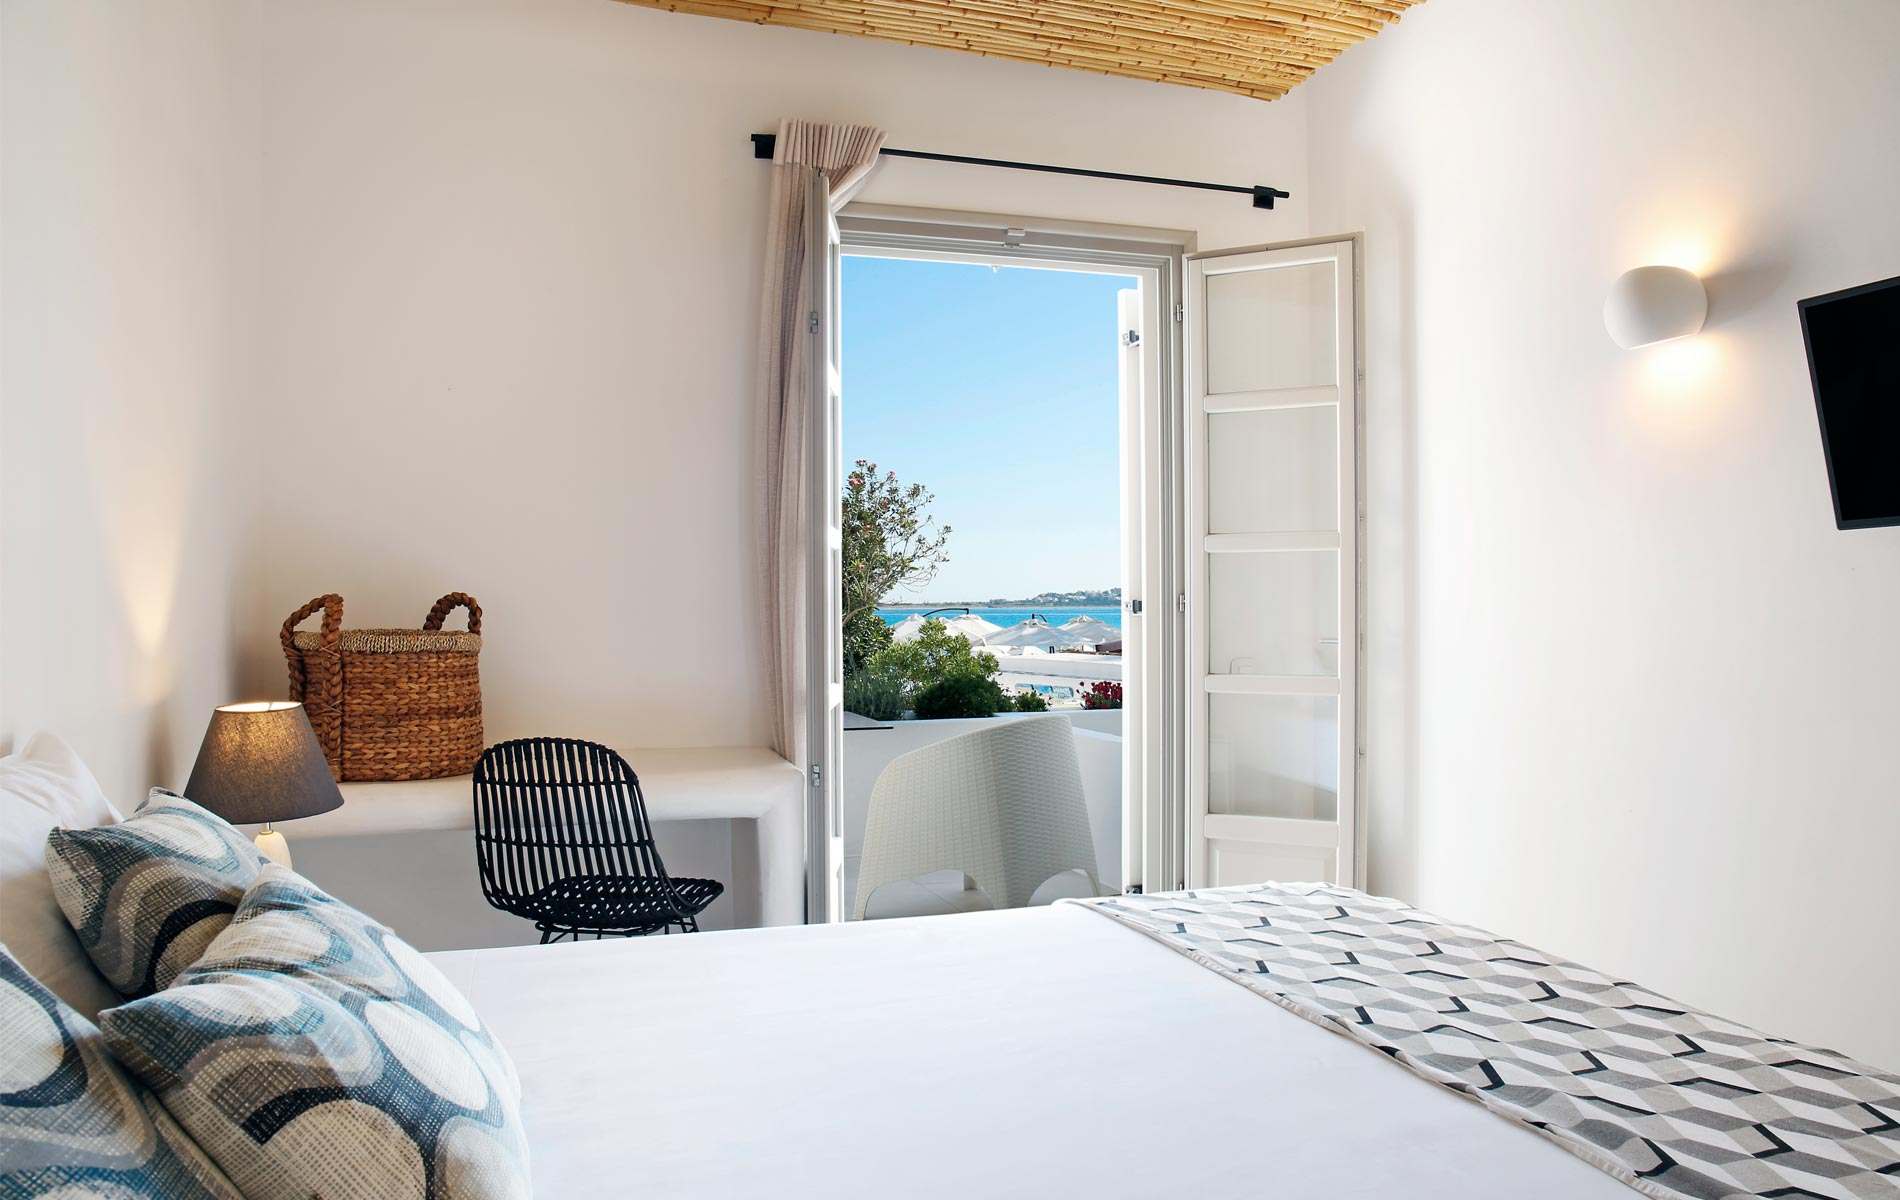 Studios-Thomais-Naxos-Greece-Room-2c1